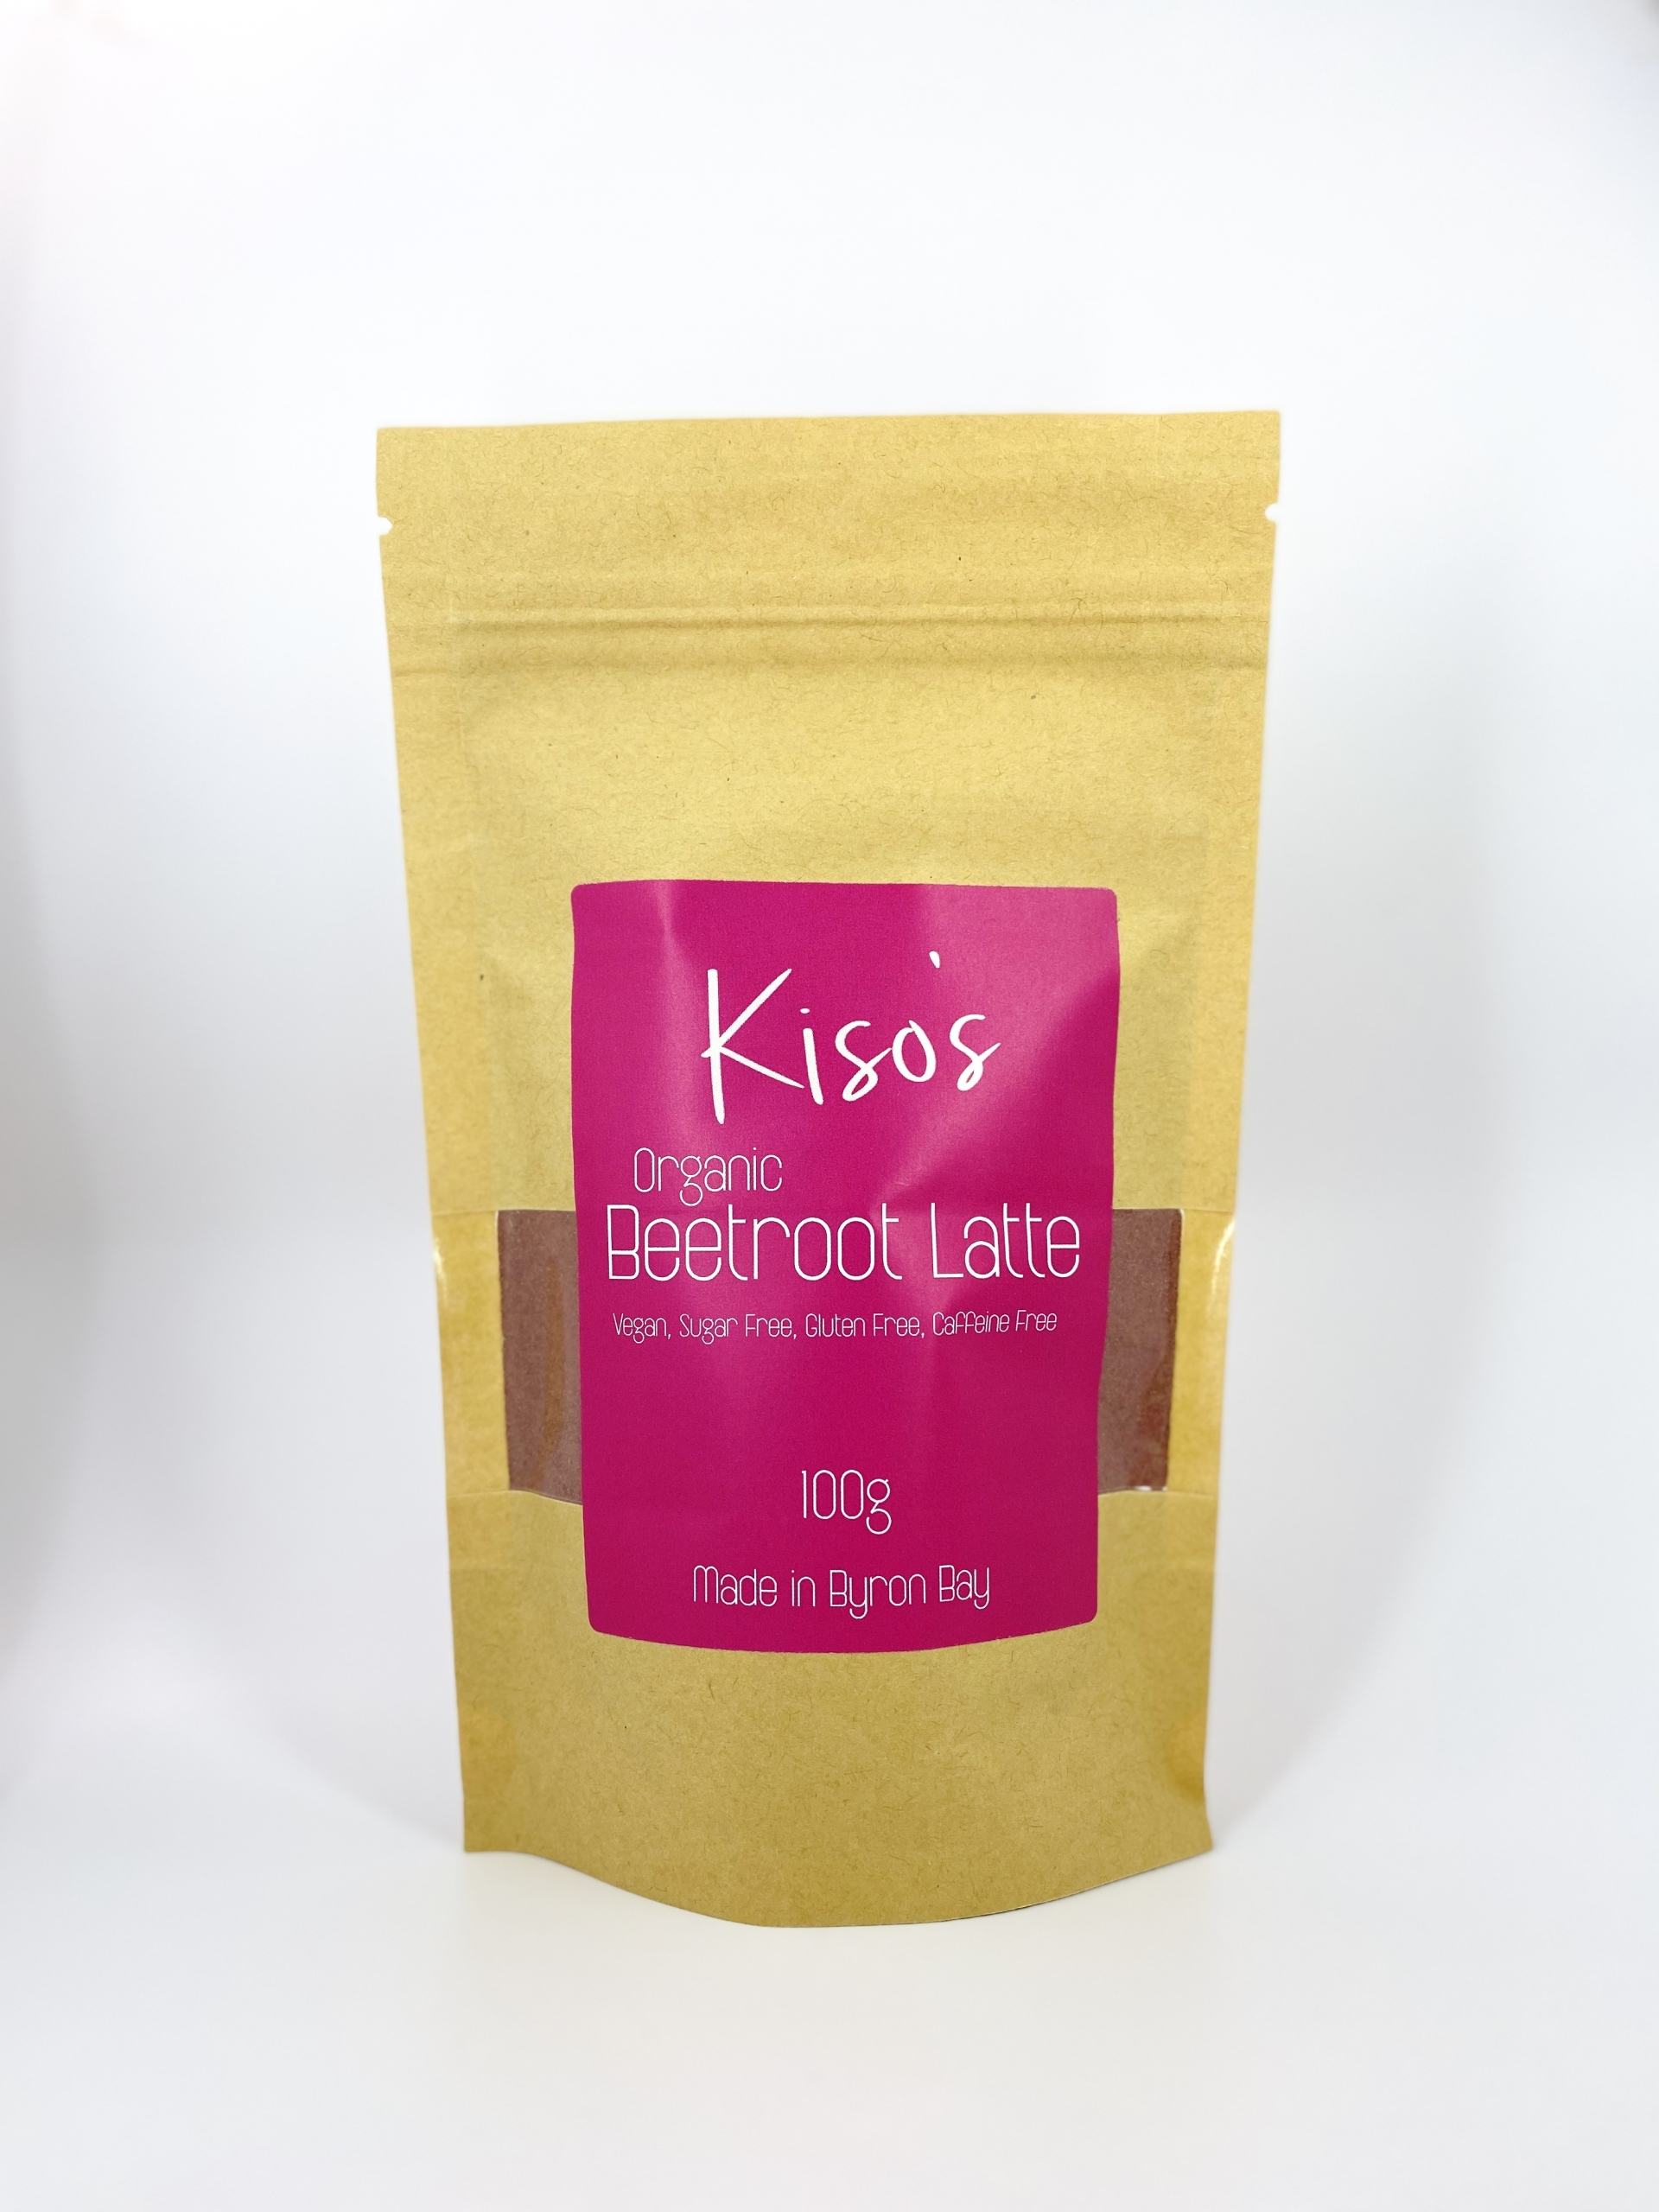 Kiso's 100g Beetroot